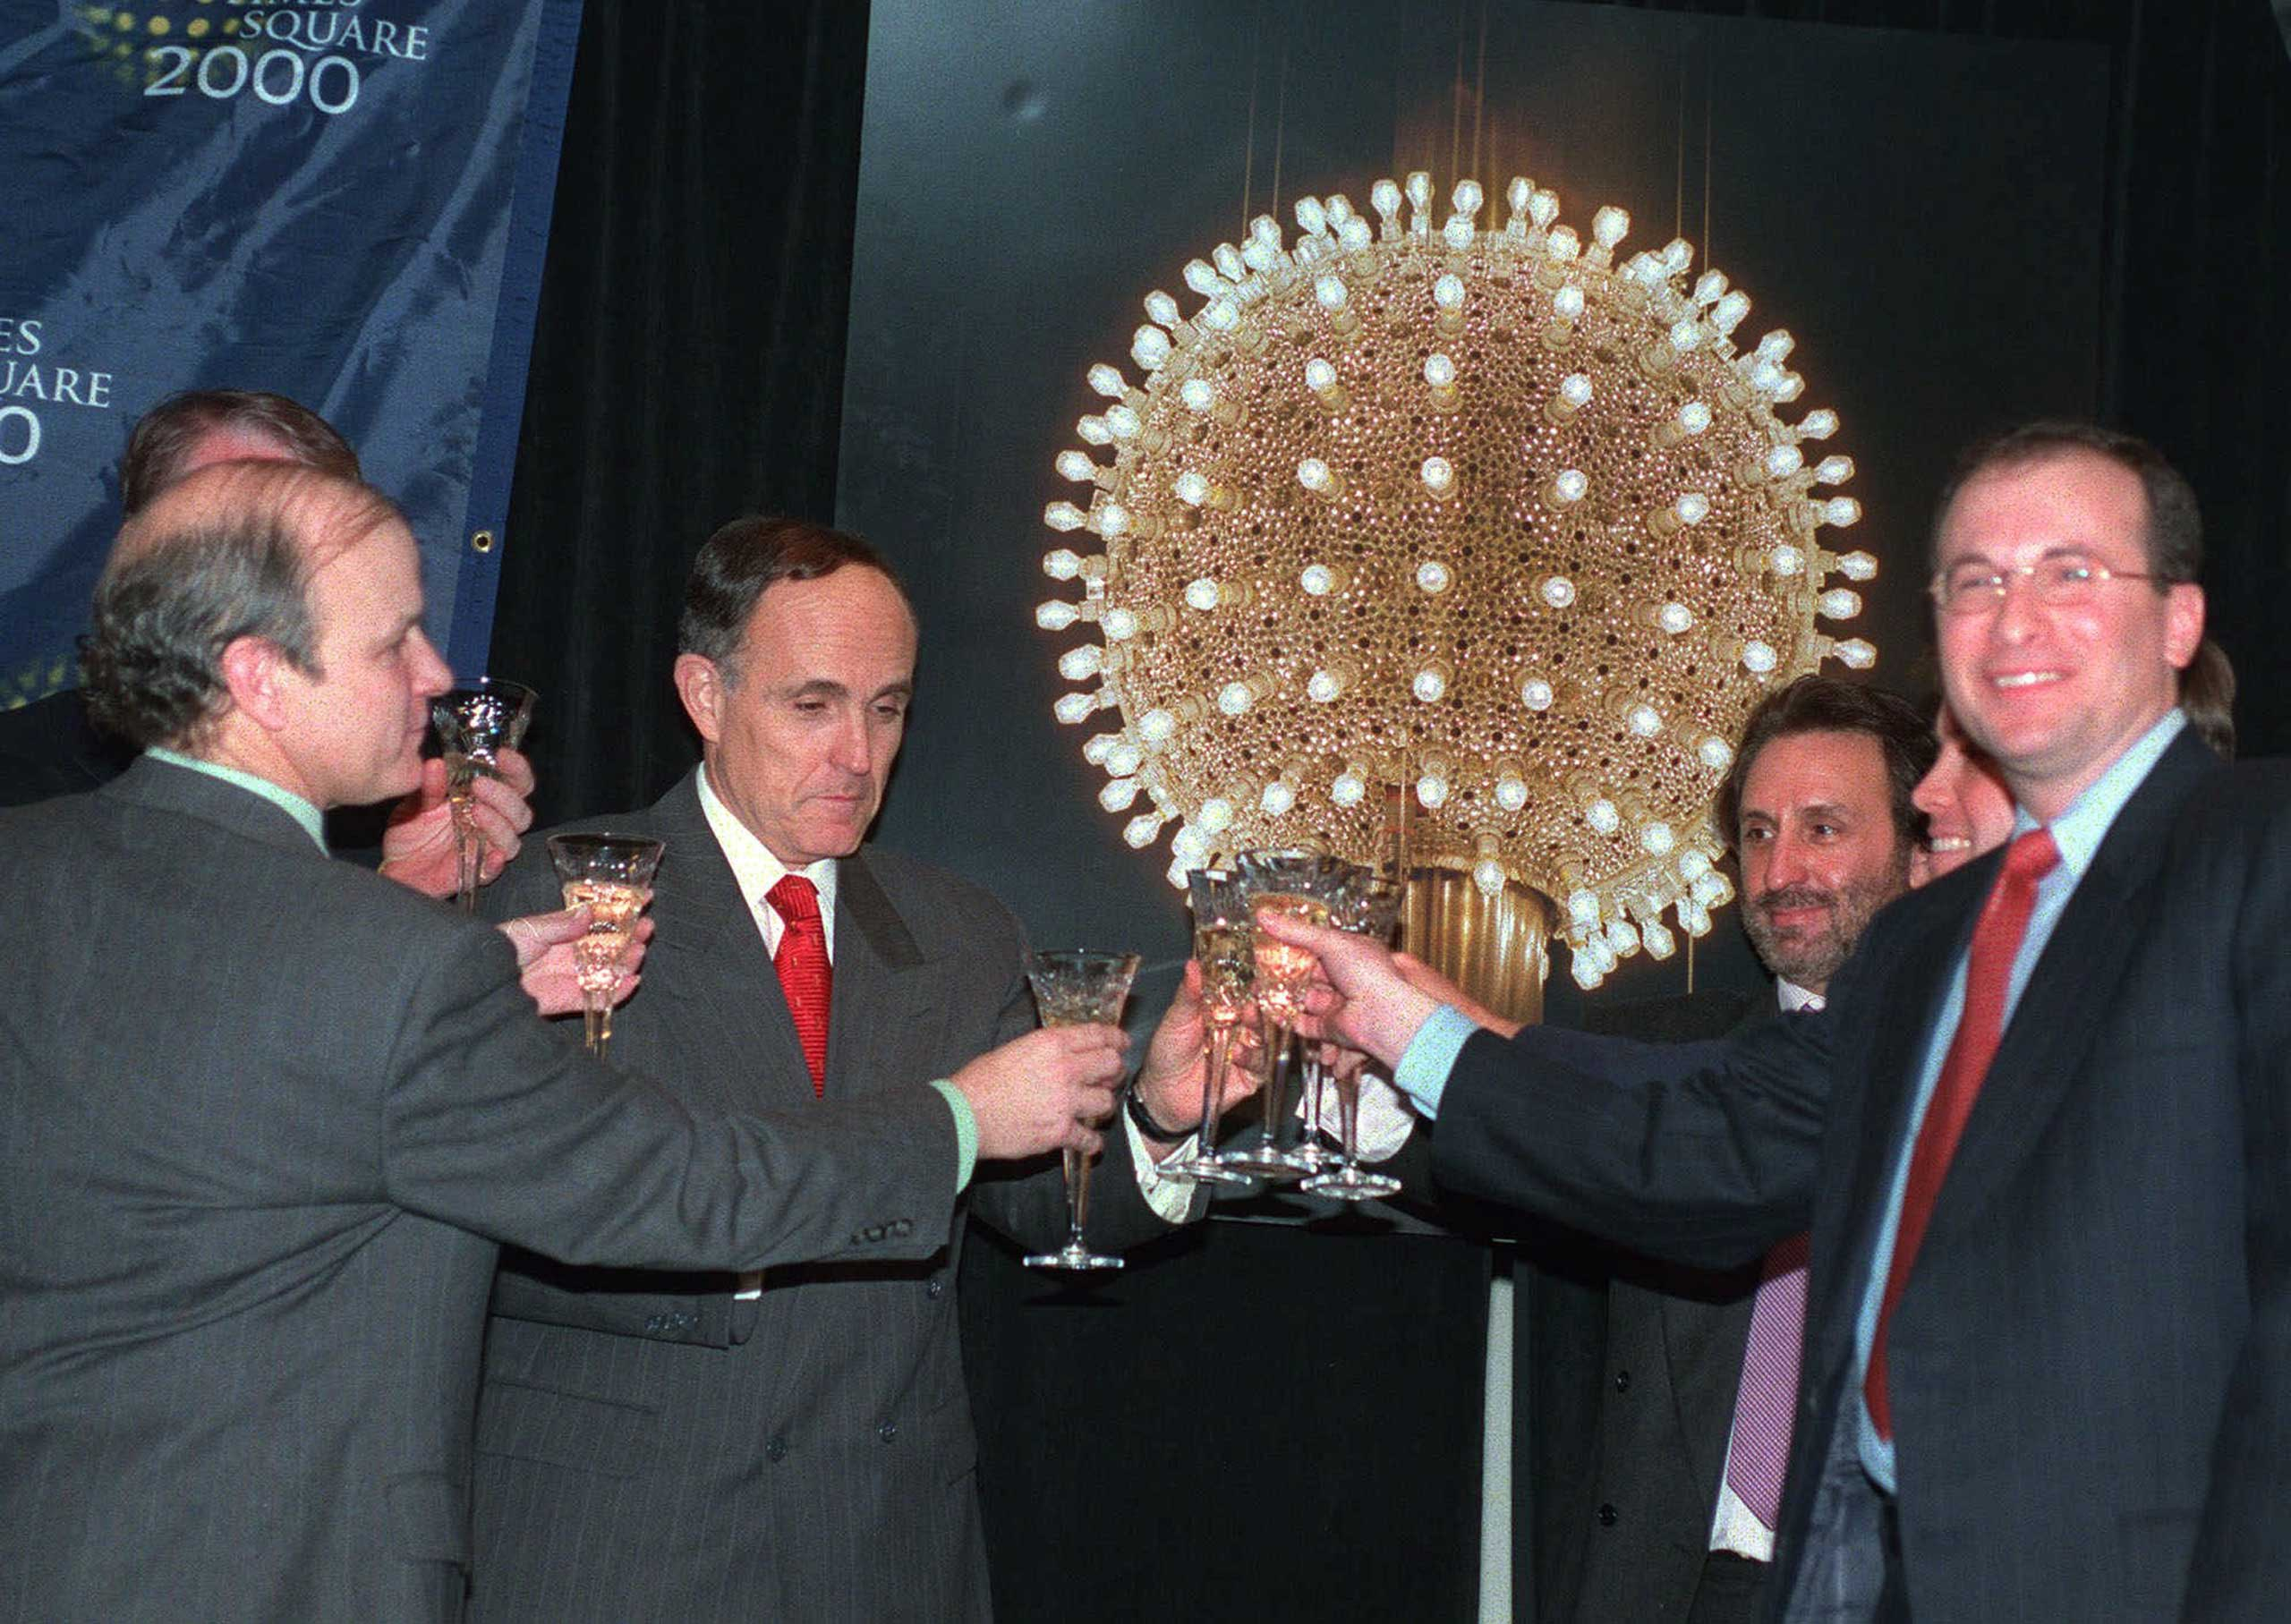 Times Square Business Improvement District President Brendan Sexton, left, New York City Mayor Rudolph Giuliani, second from left, actor and Chairman of New York City 2000 Ron Silver, right rear, and President of Countdown Entertainment Jeffrey A. Straus, right, make a toast at a press conference in New York City on, Dec. 28, 1998.